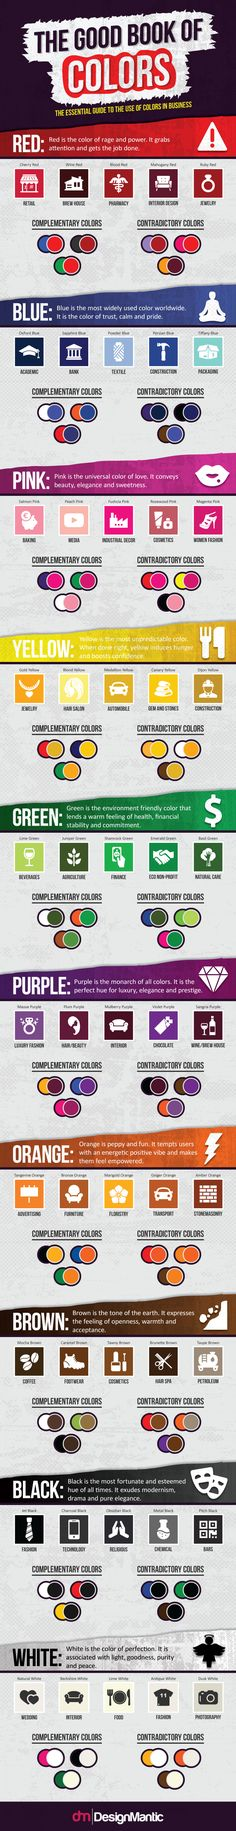 The Good Book Of Colors: The Essential Guide For Business! #infographic http://bit.ly/2mvUxoF